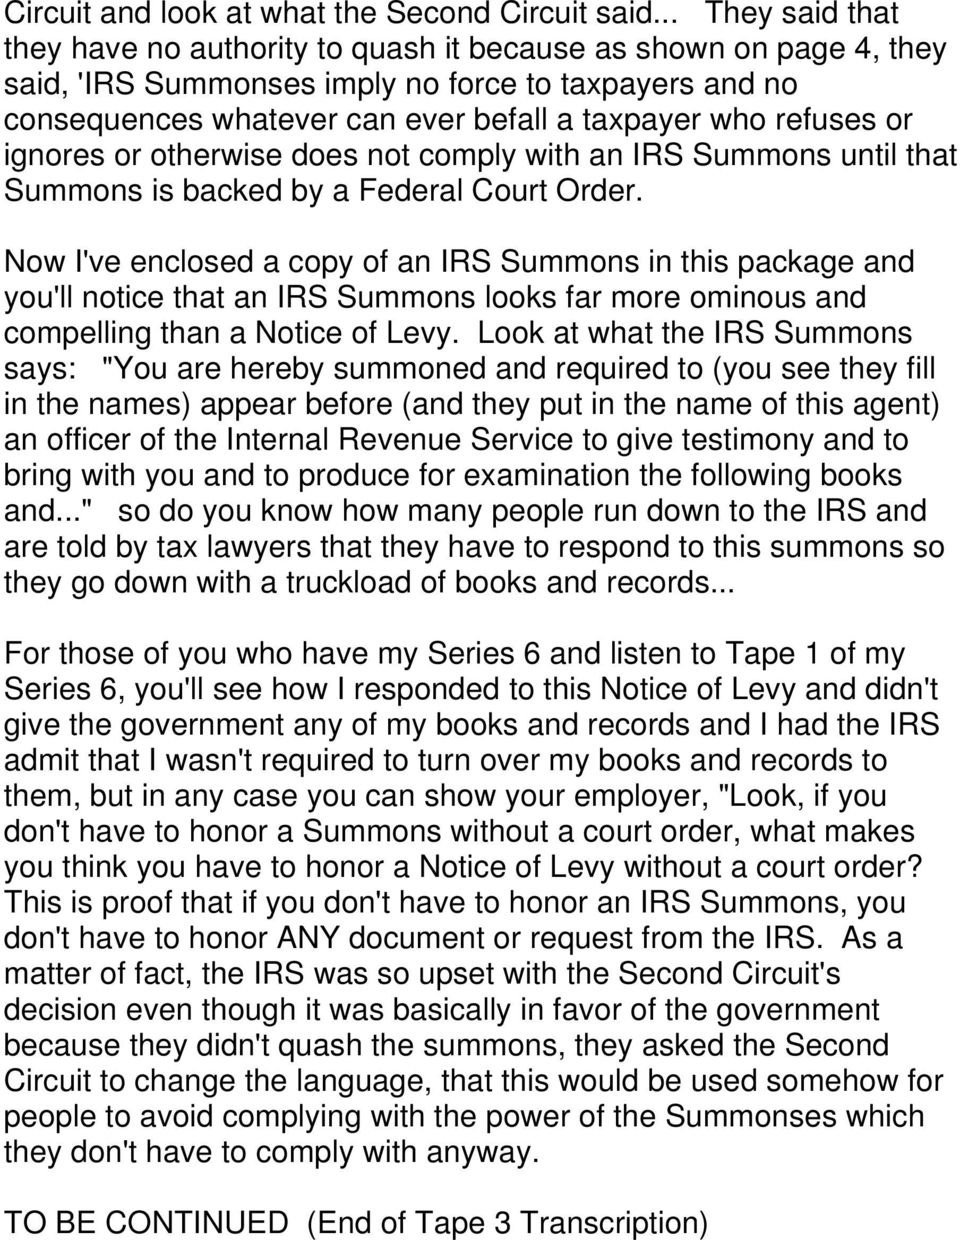 refuses or ignores or otherwise does not comply with an IRS Summons until that Summons is backed by a Federal Court Order.